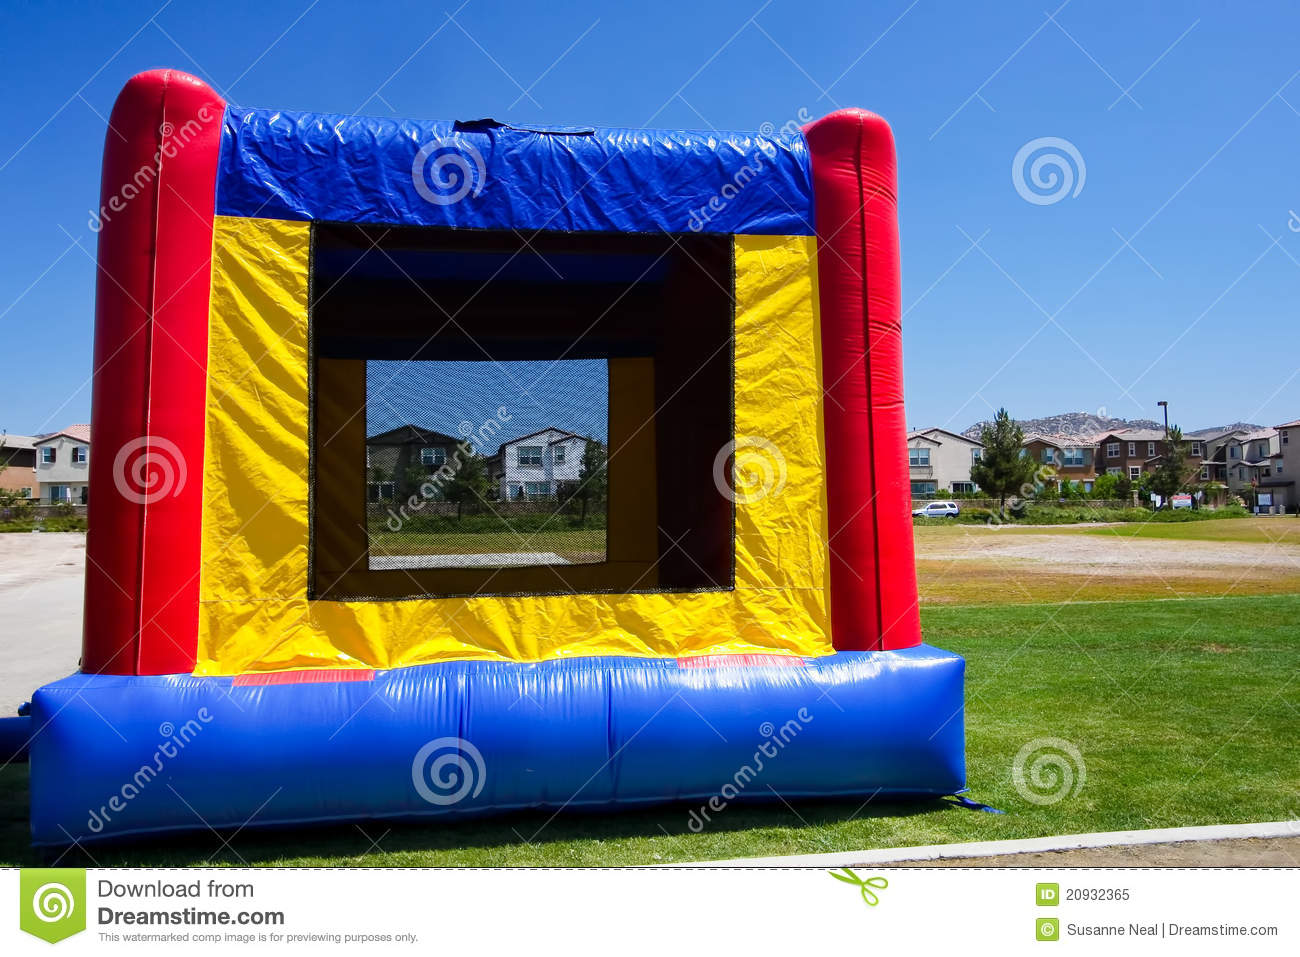 blue bounce bouncy house inflatable - Inflatable Bounce House